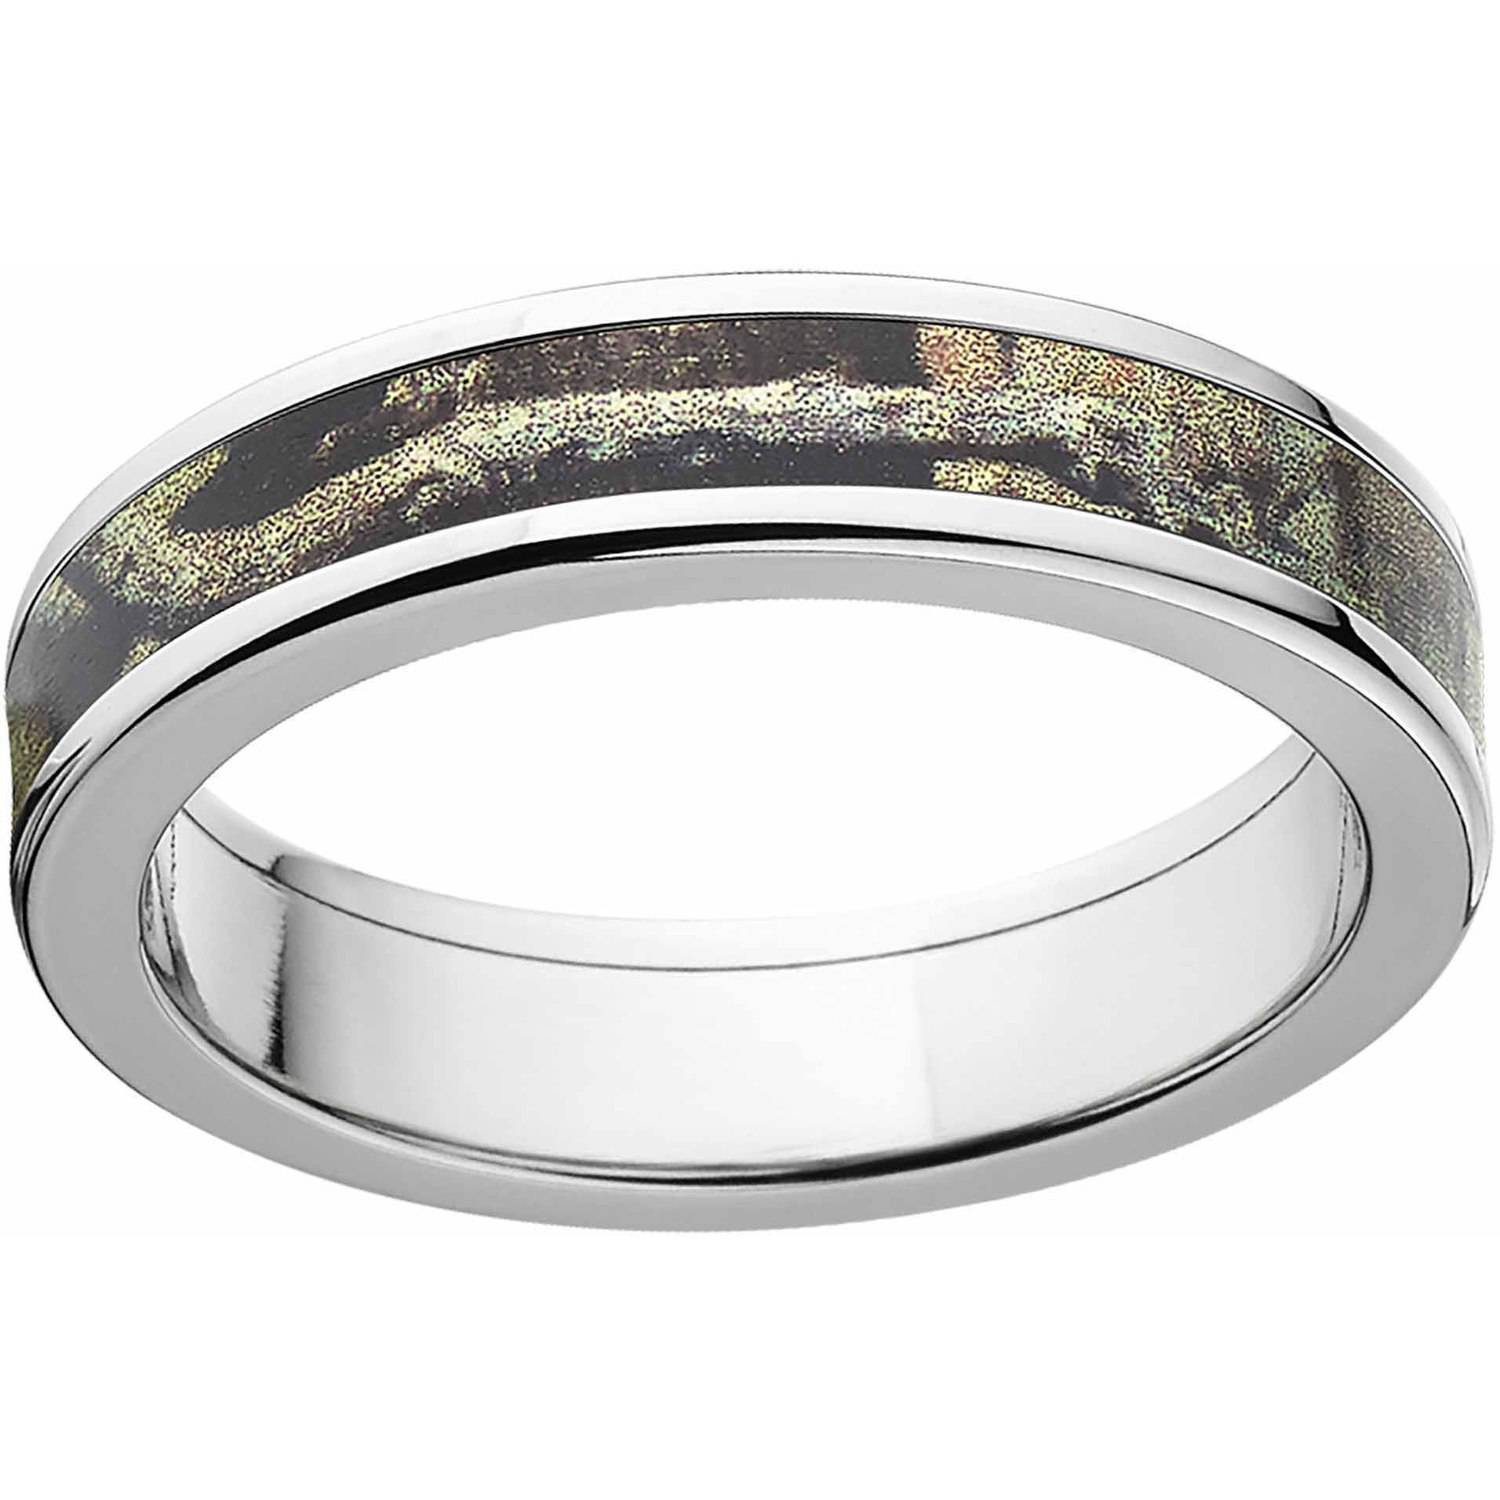 Mossy Oak Break Up Infinity Men's Camo 5mm Stainless Steel Wedding Band with Cross Brushed Edges and Deluxe Comfort Fit